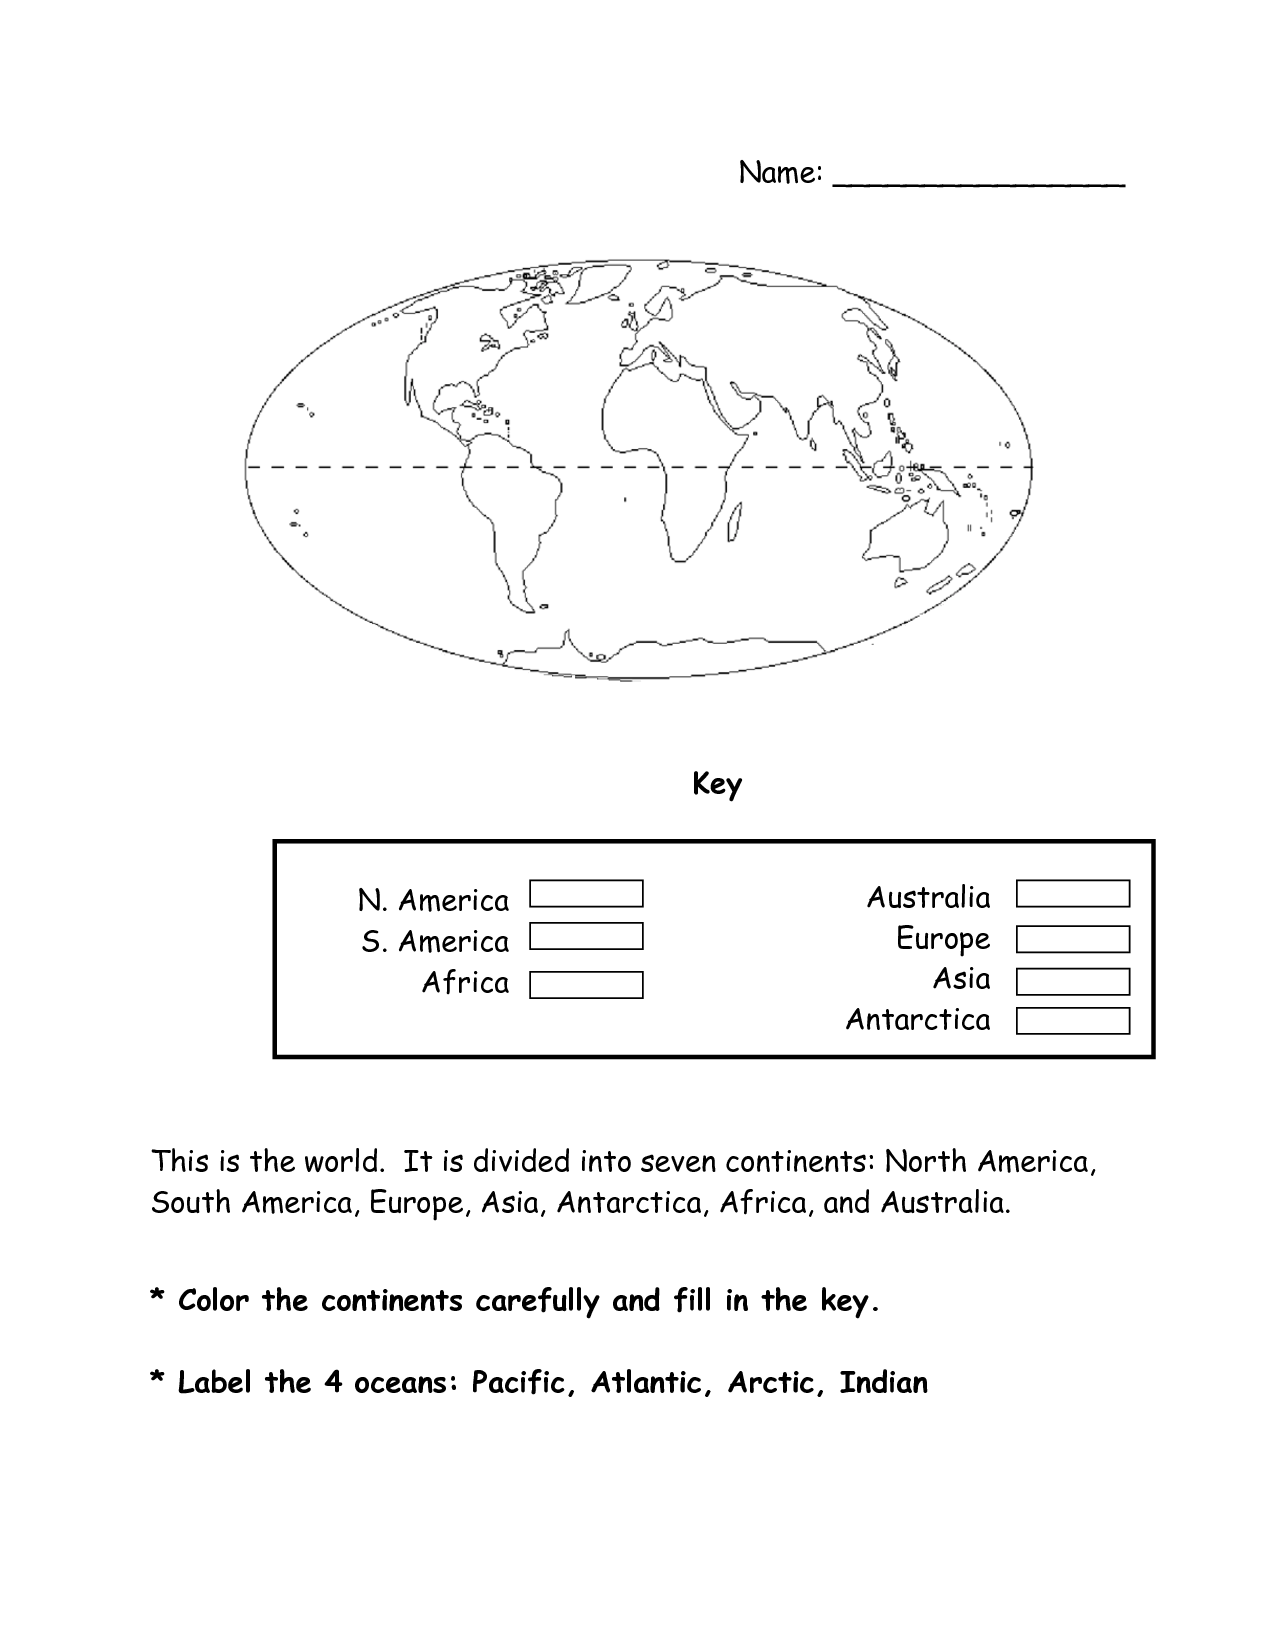 World Map Continents Worksheet